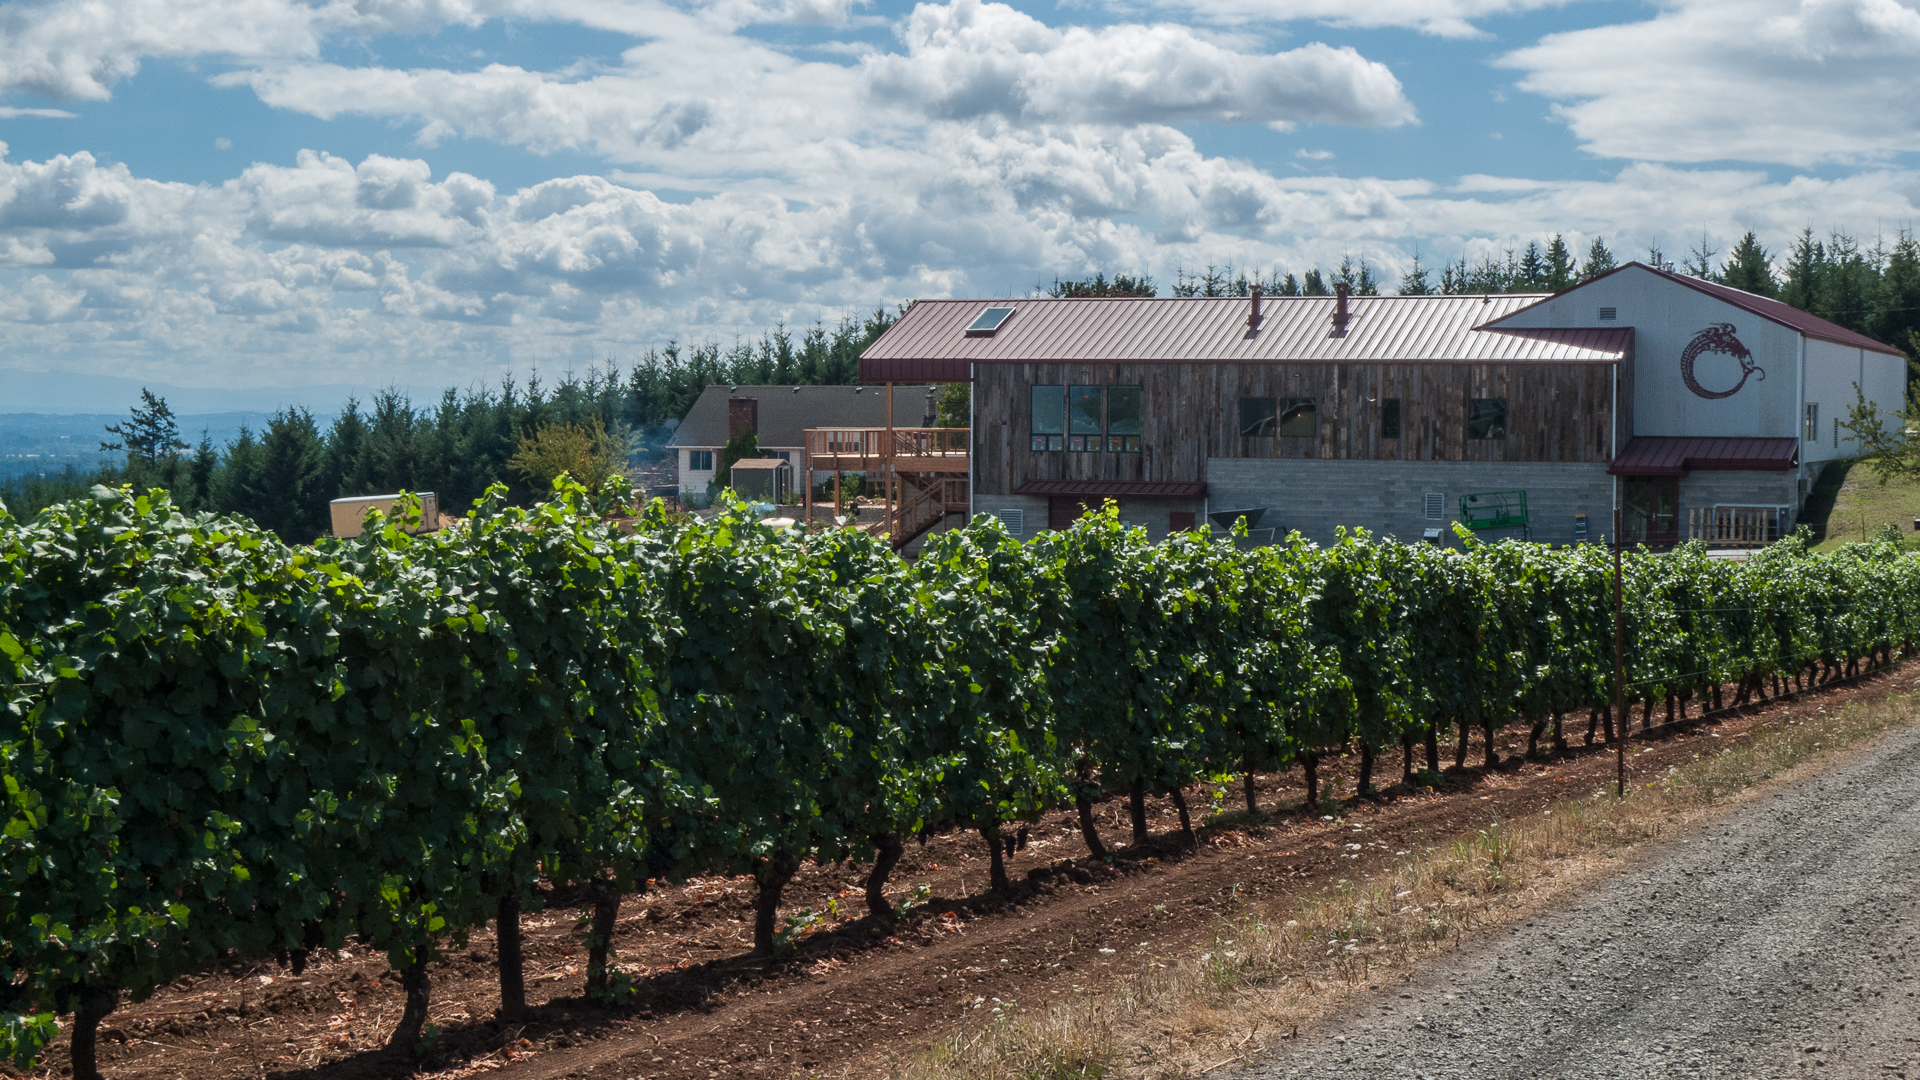 And the new winery. Very impressive!